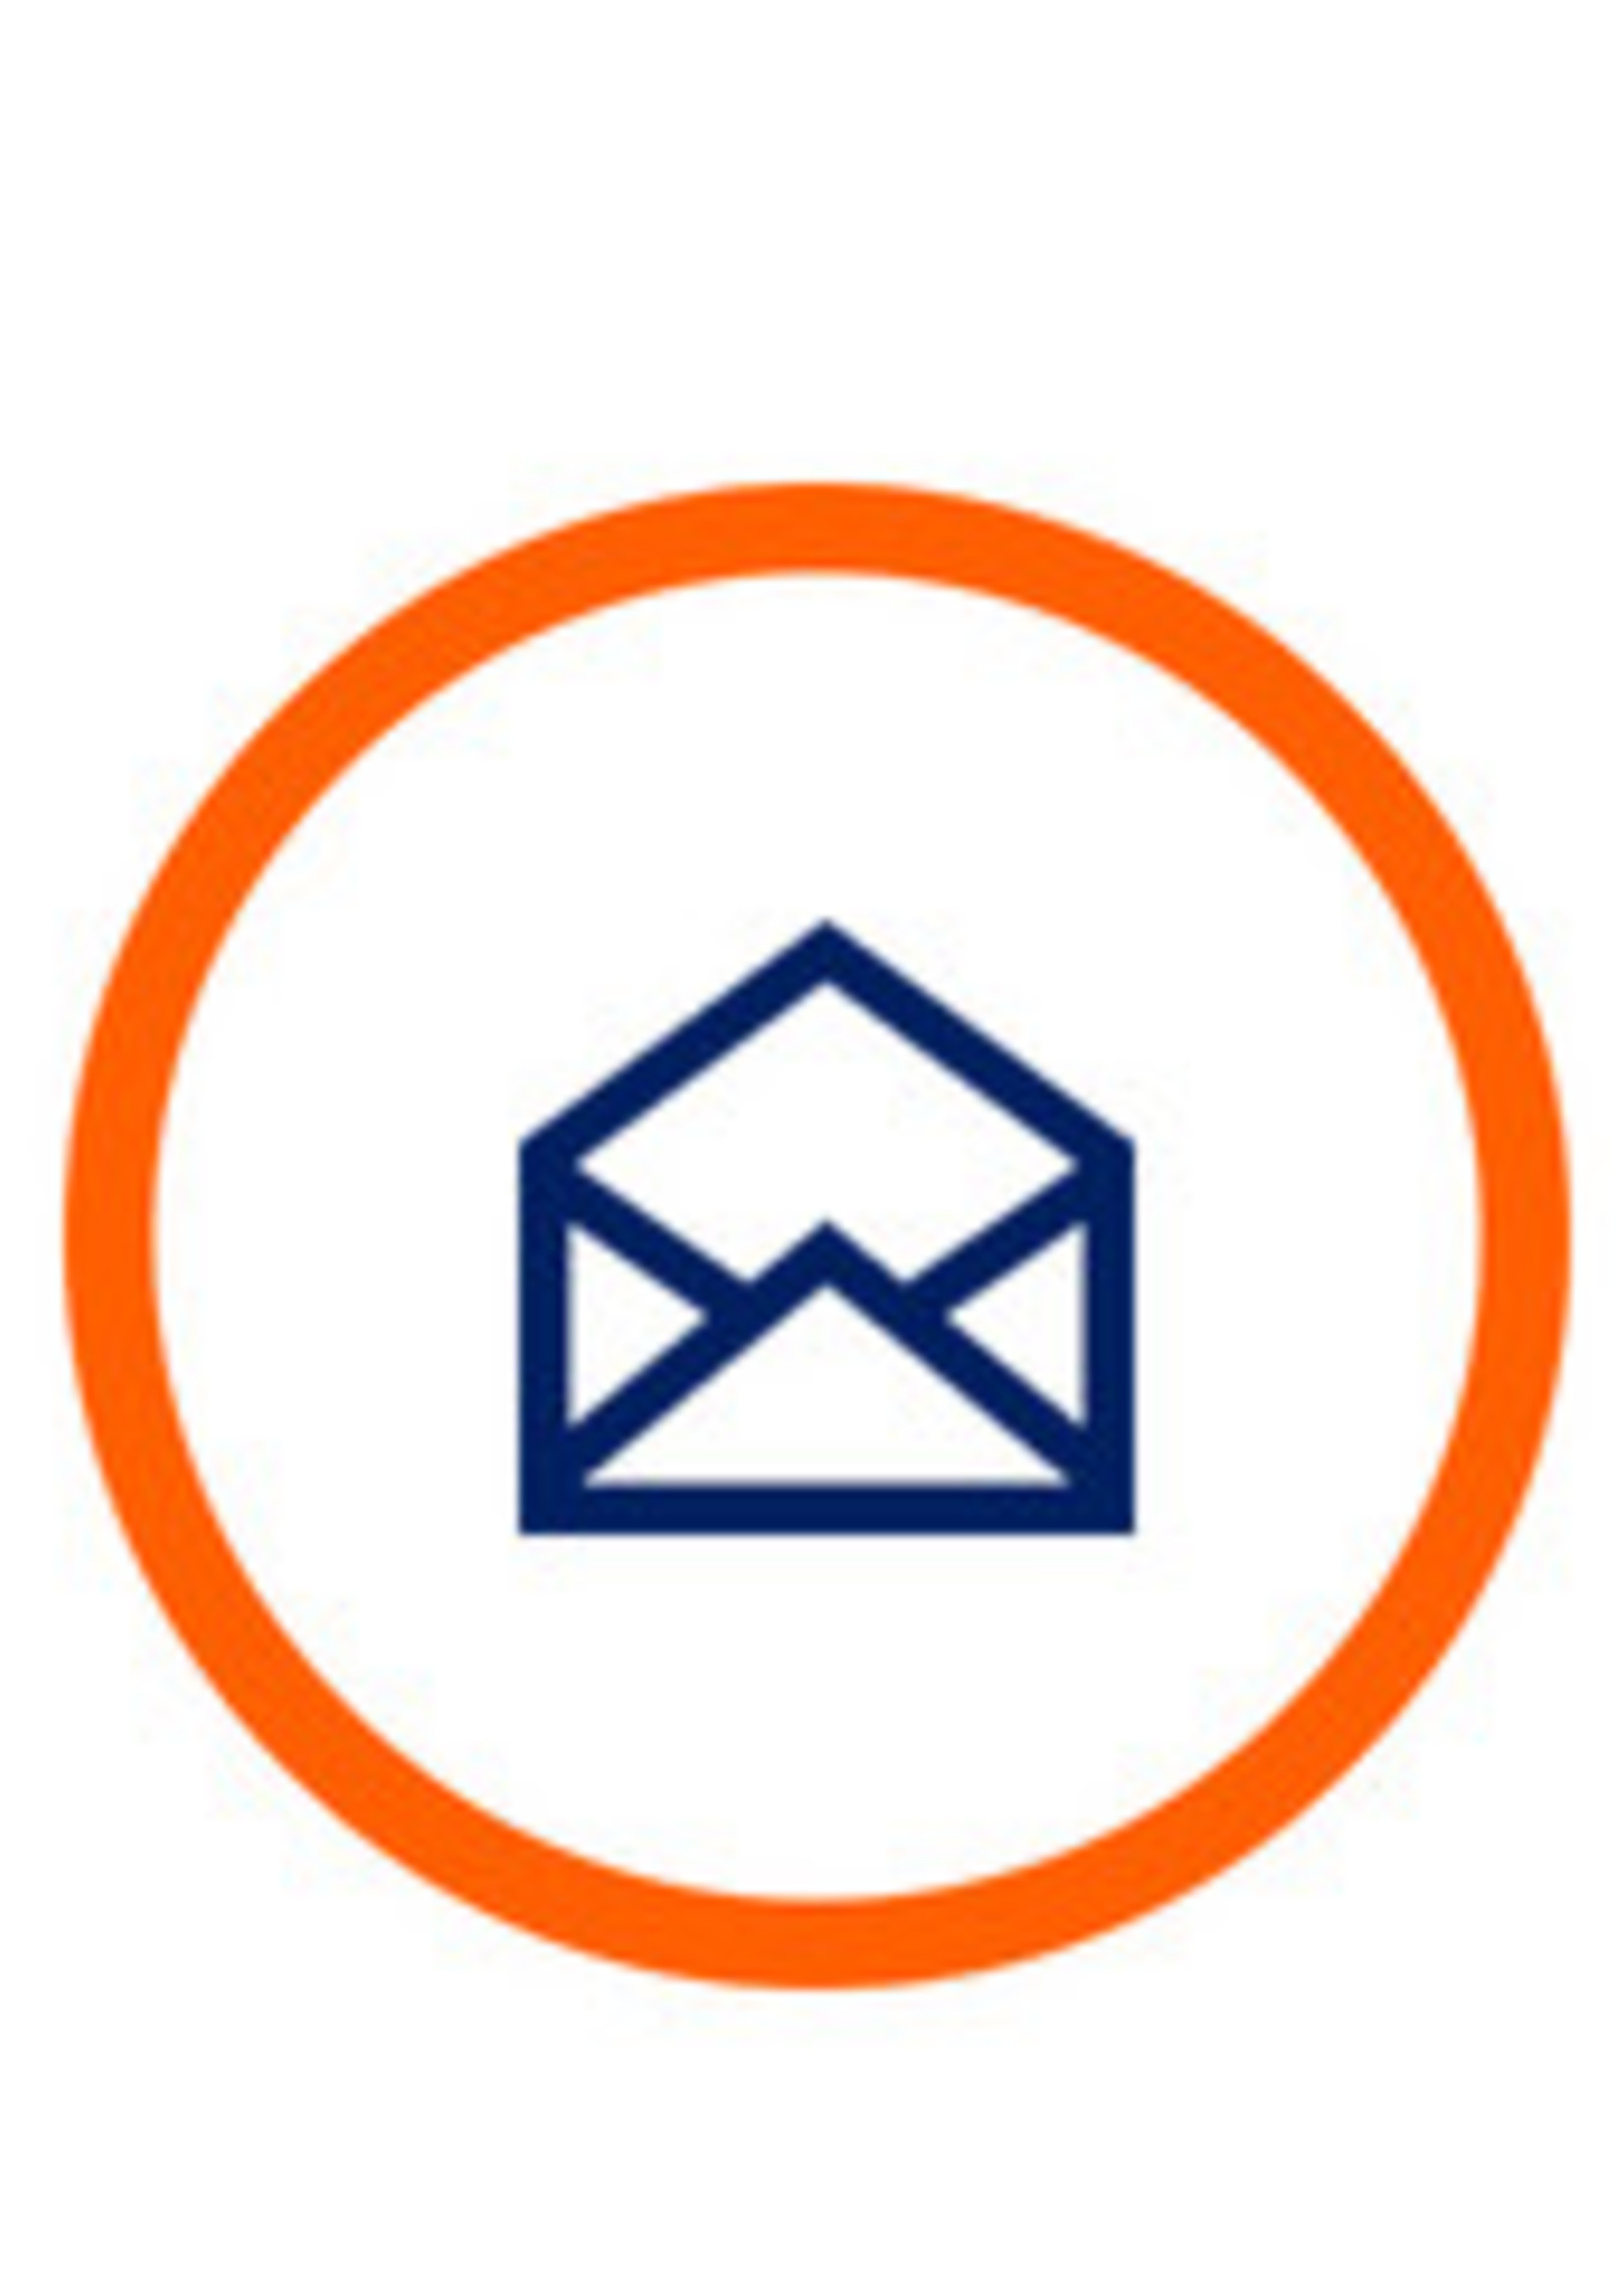 Support by mail